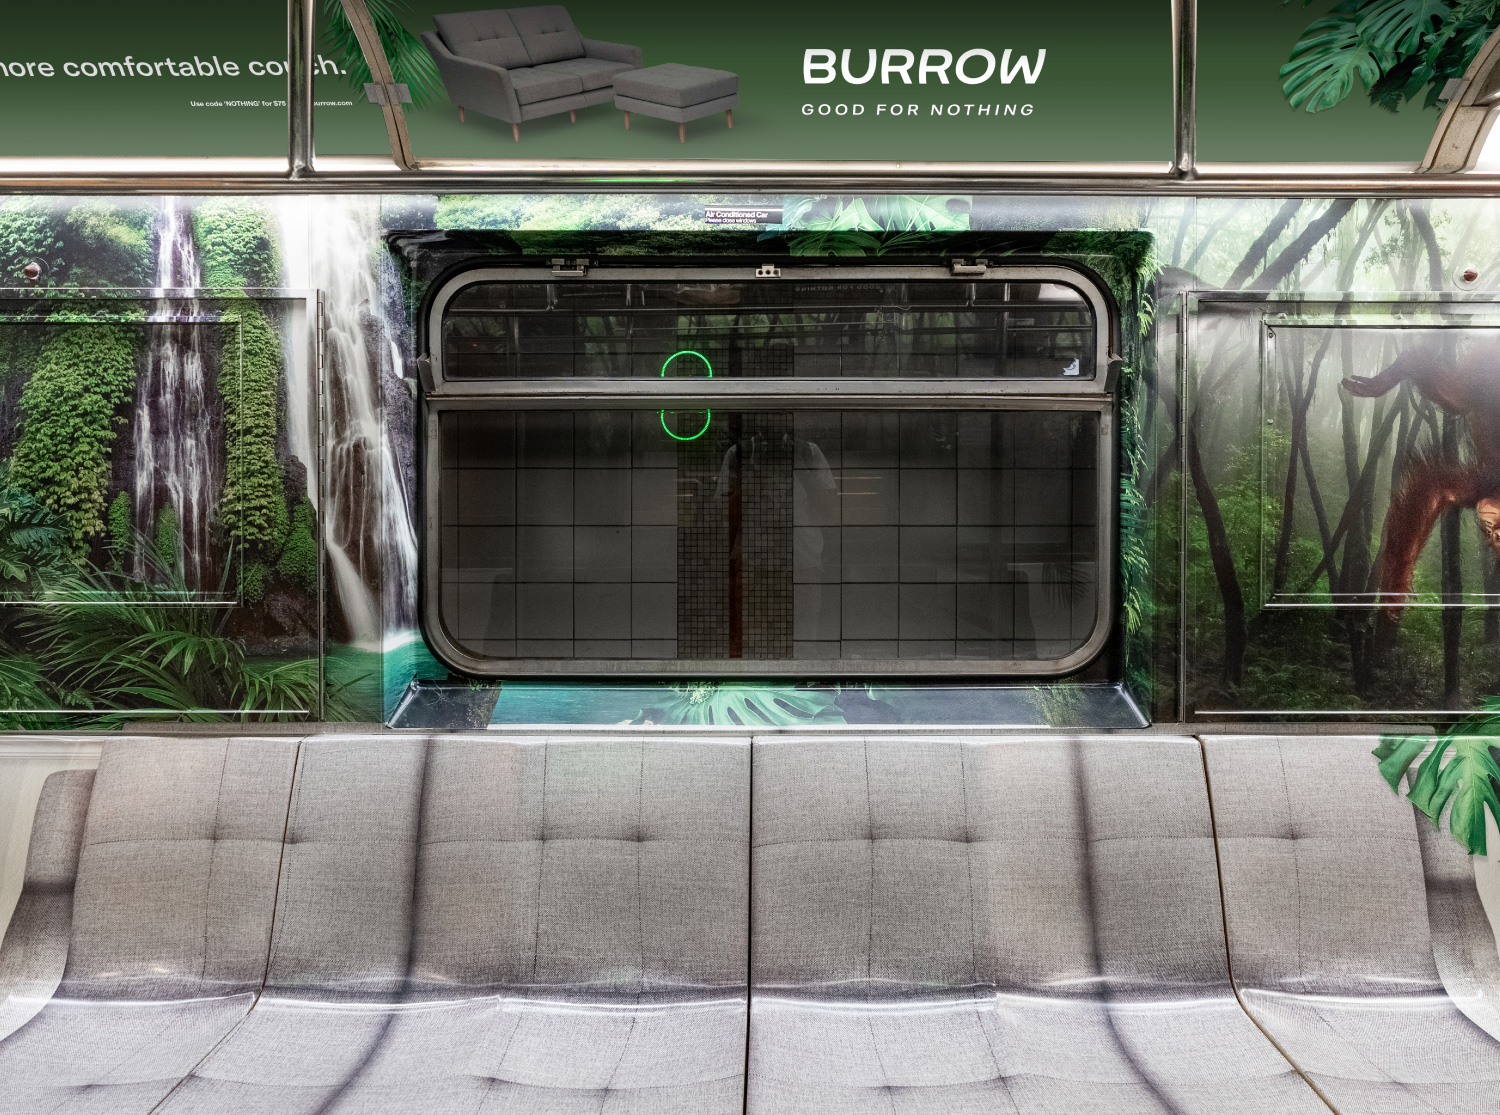 16-red-antler-burrow-good-for-nothing-campaign-subway-takeover-interior.jpg